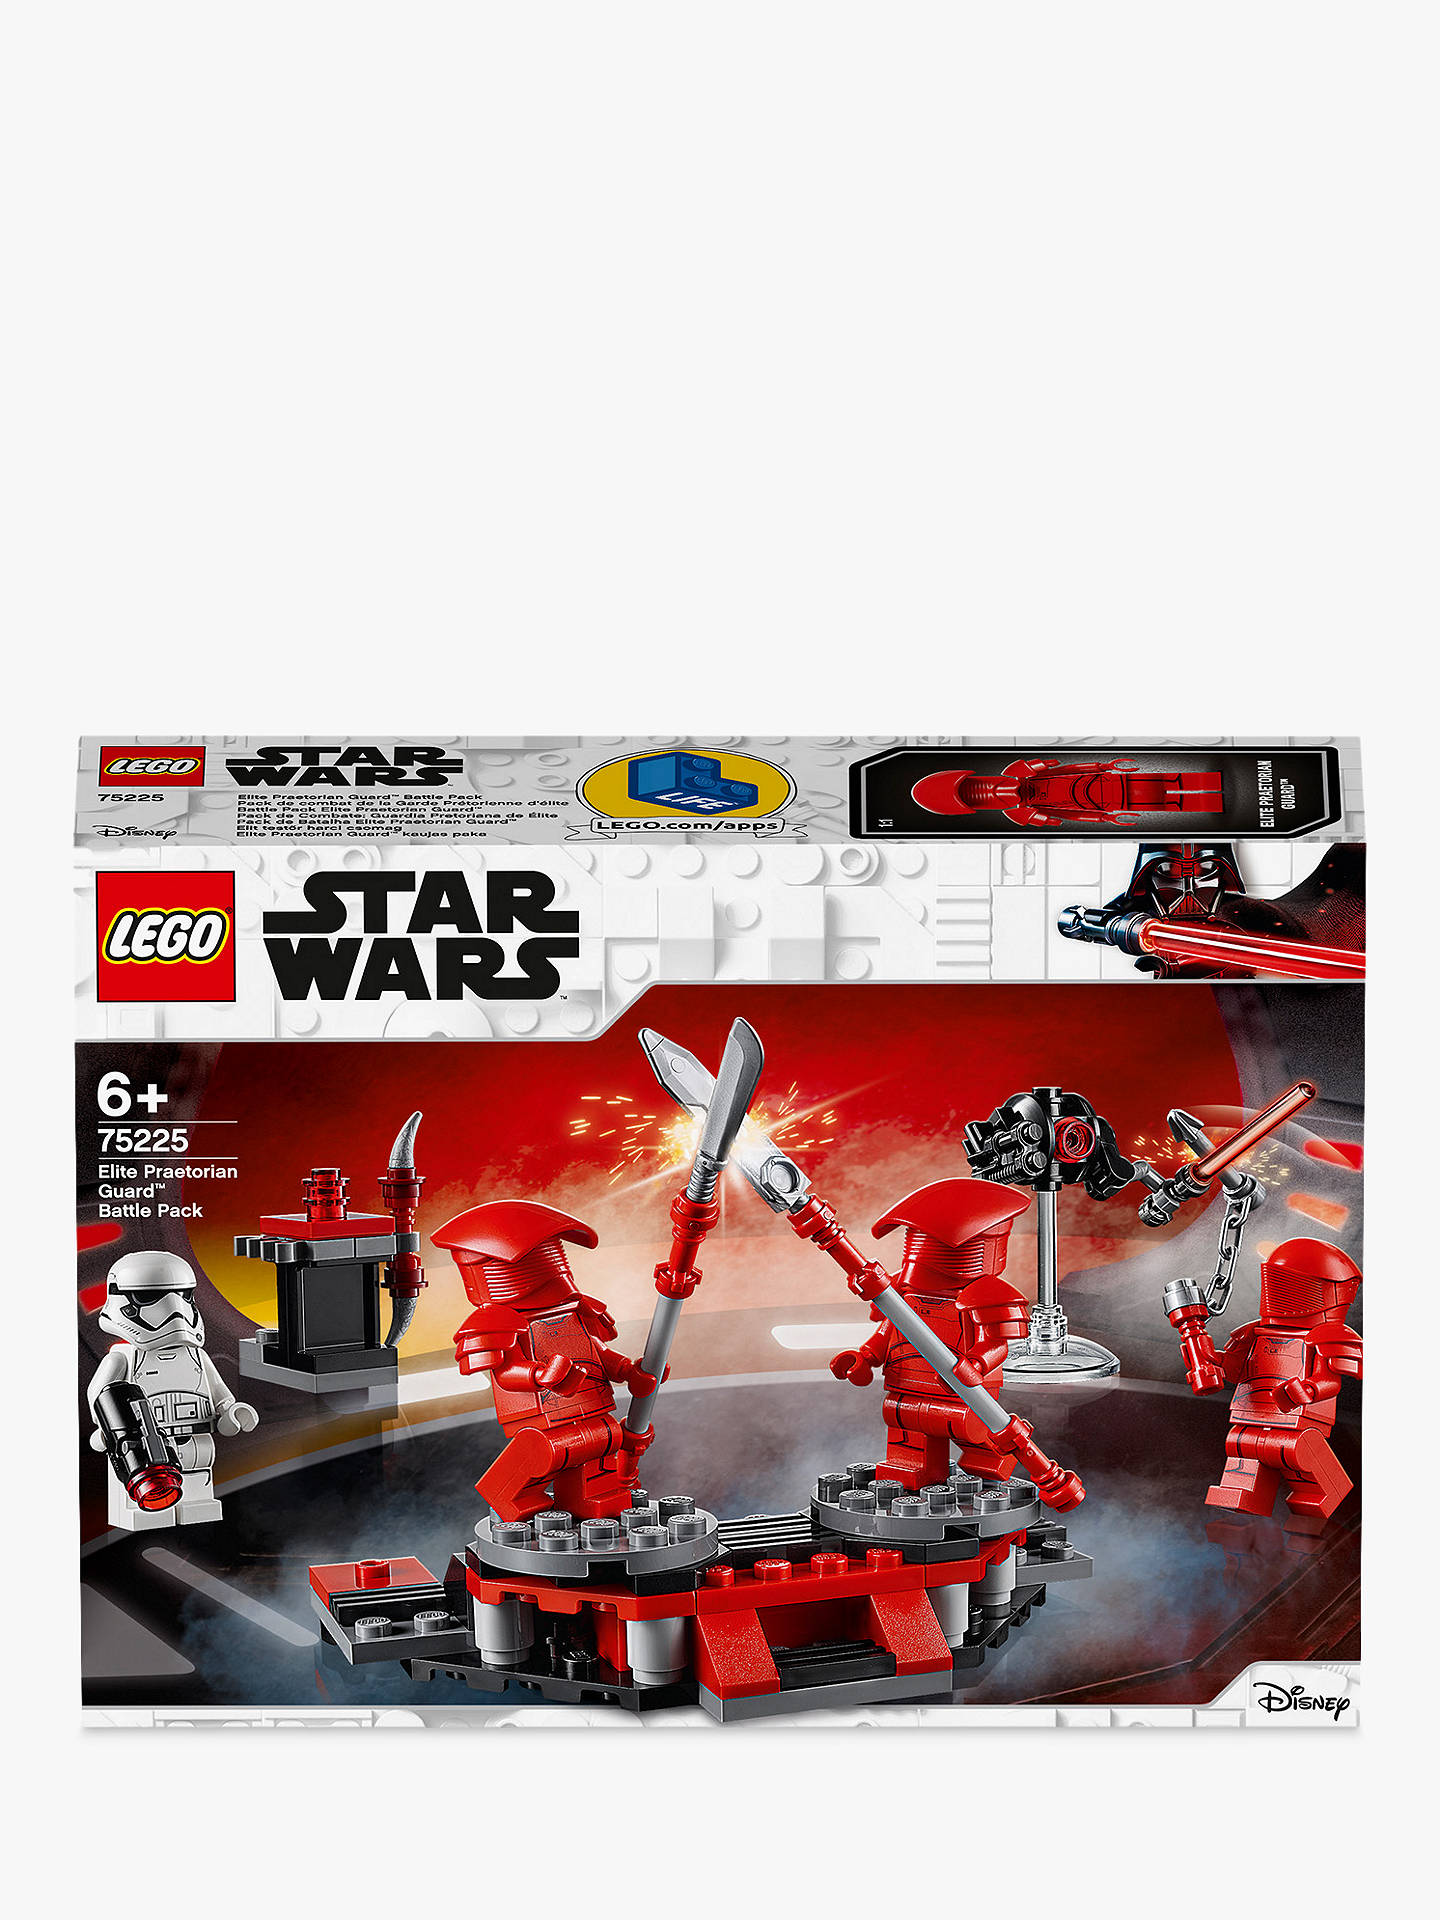 fb8ed6a71b Buy LEGO Star Wars 75225 Elite Praetorian Guard Battle Pack Online at  johnlewis.com ...